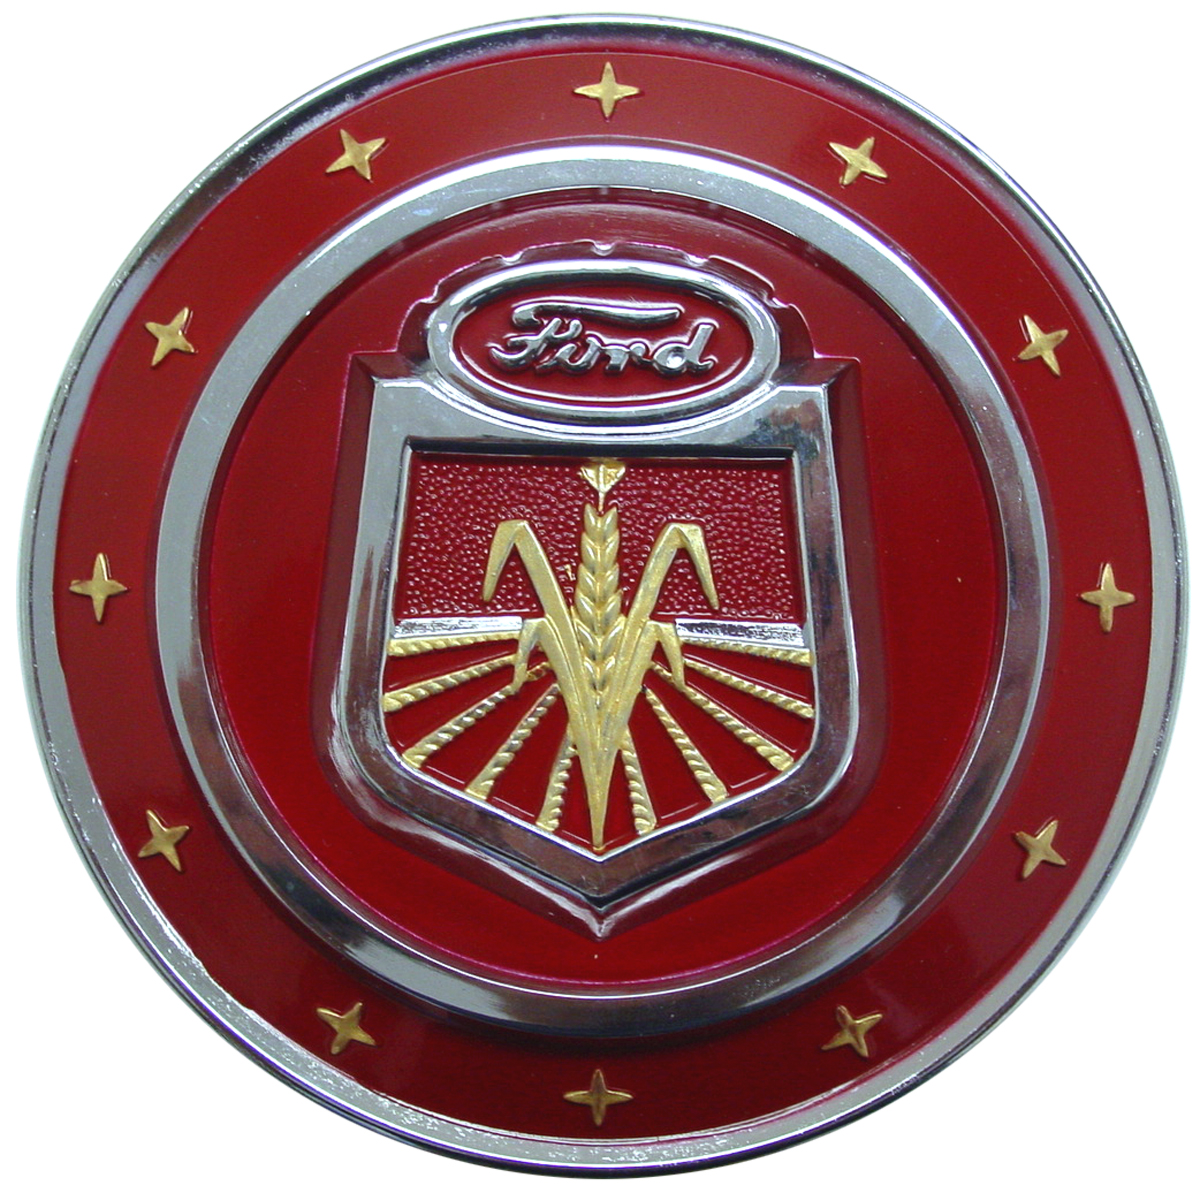 Fds012 Hood Emblem Ford N Tractor Parts Parts For